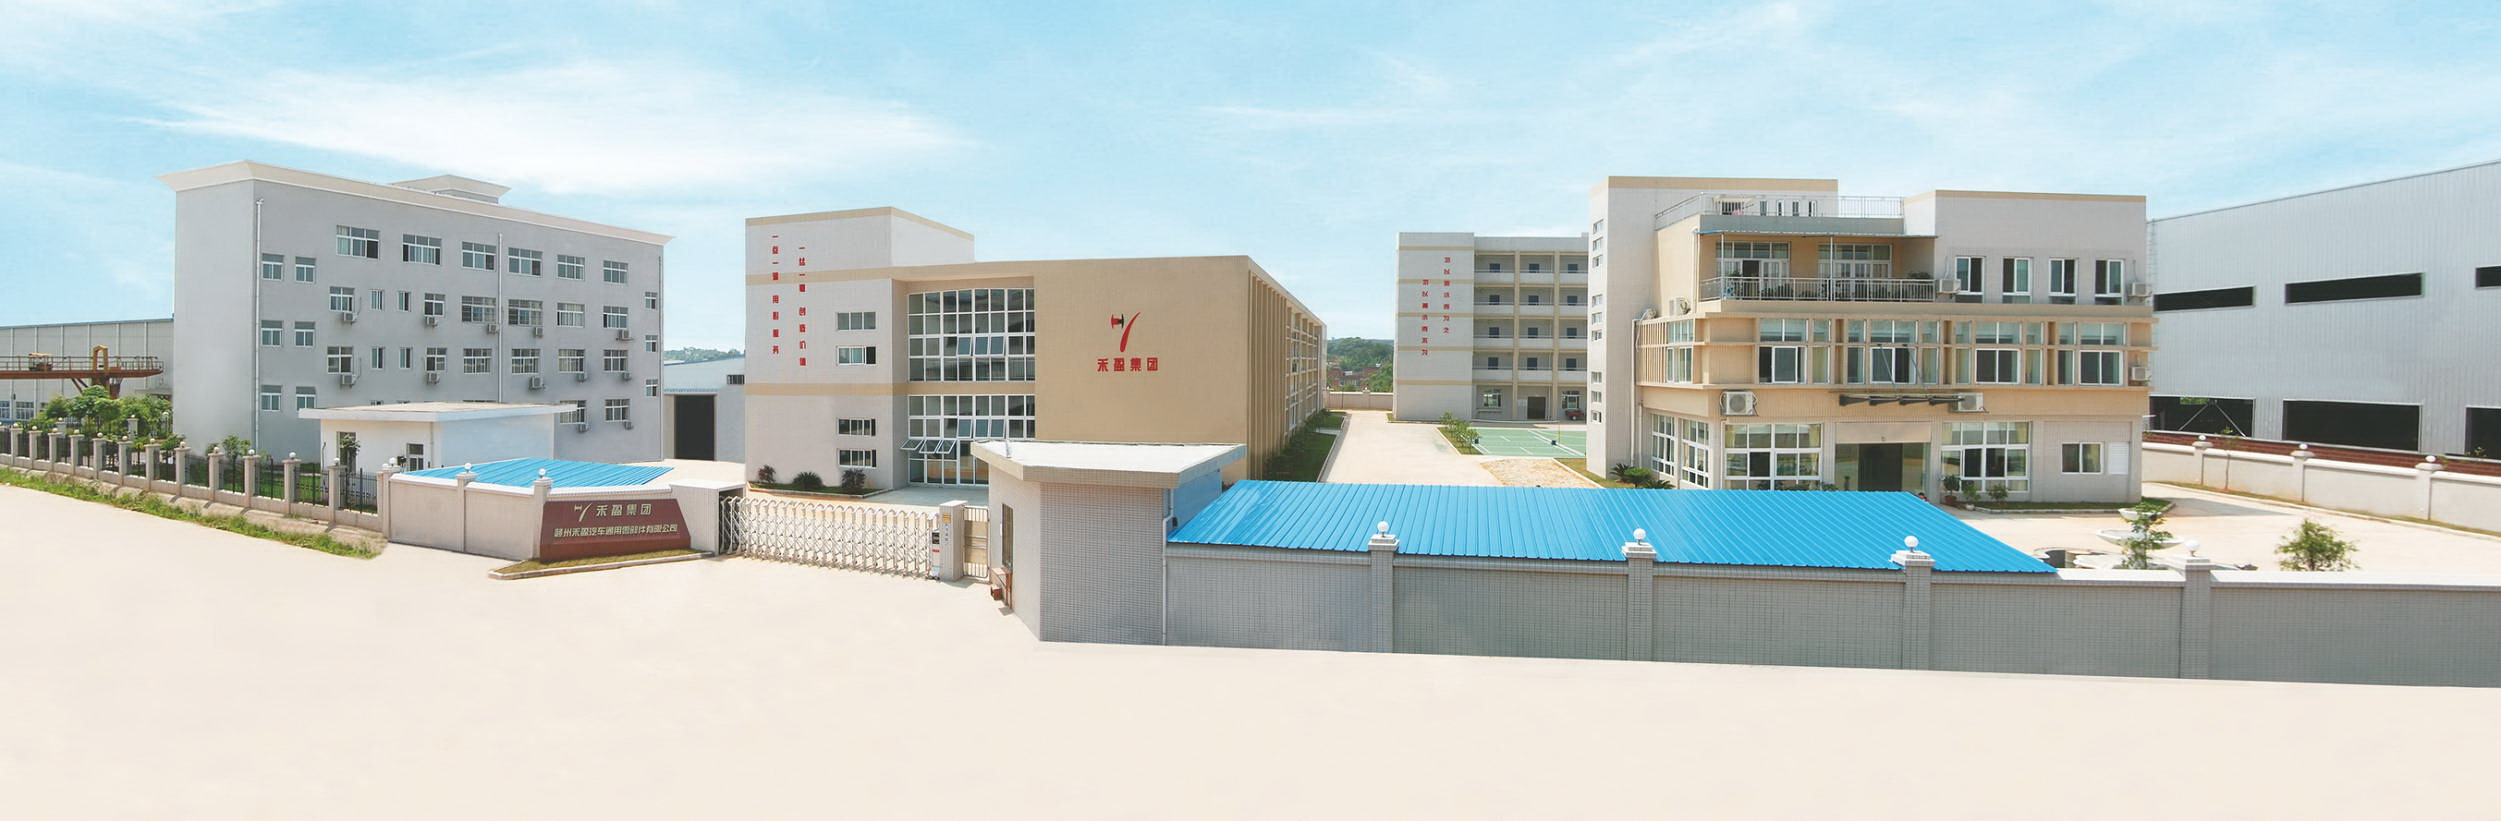 Ganzhou Heying Universal Parts Co., Ltd.